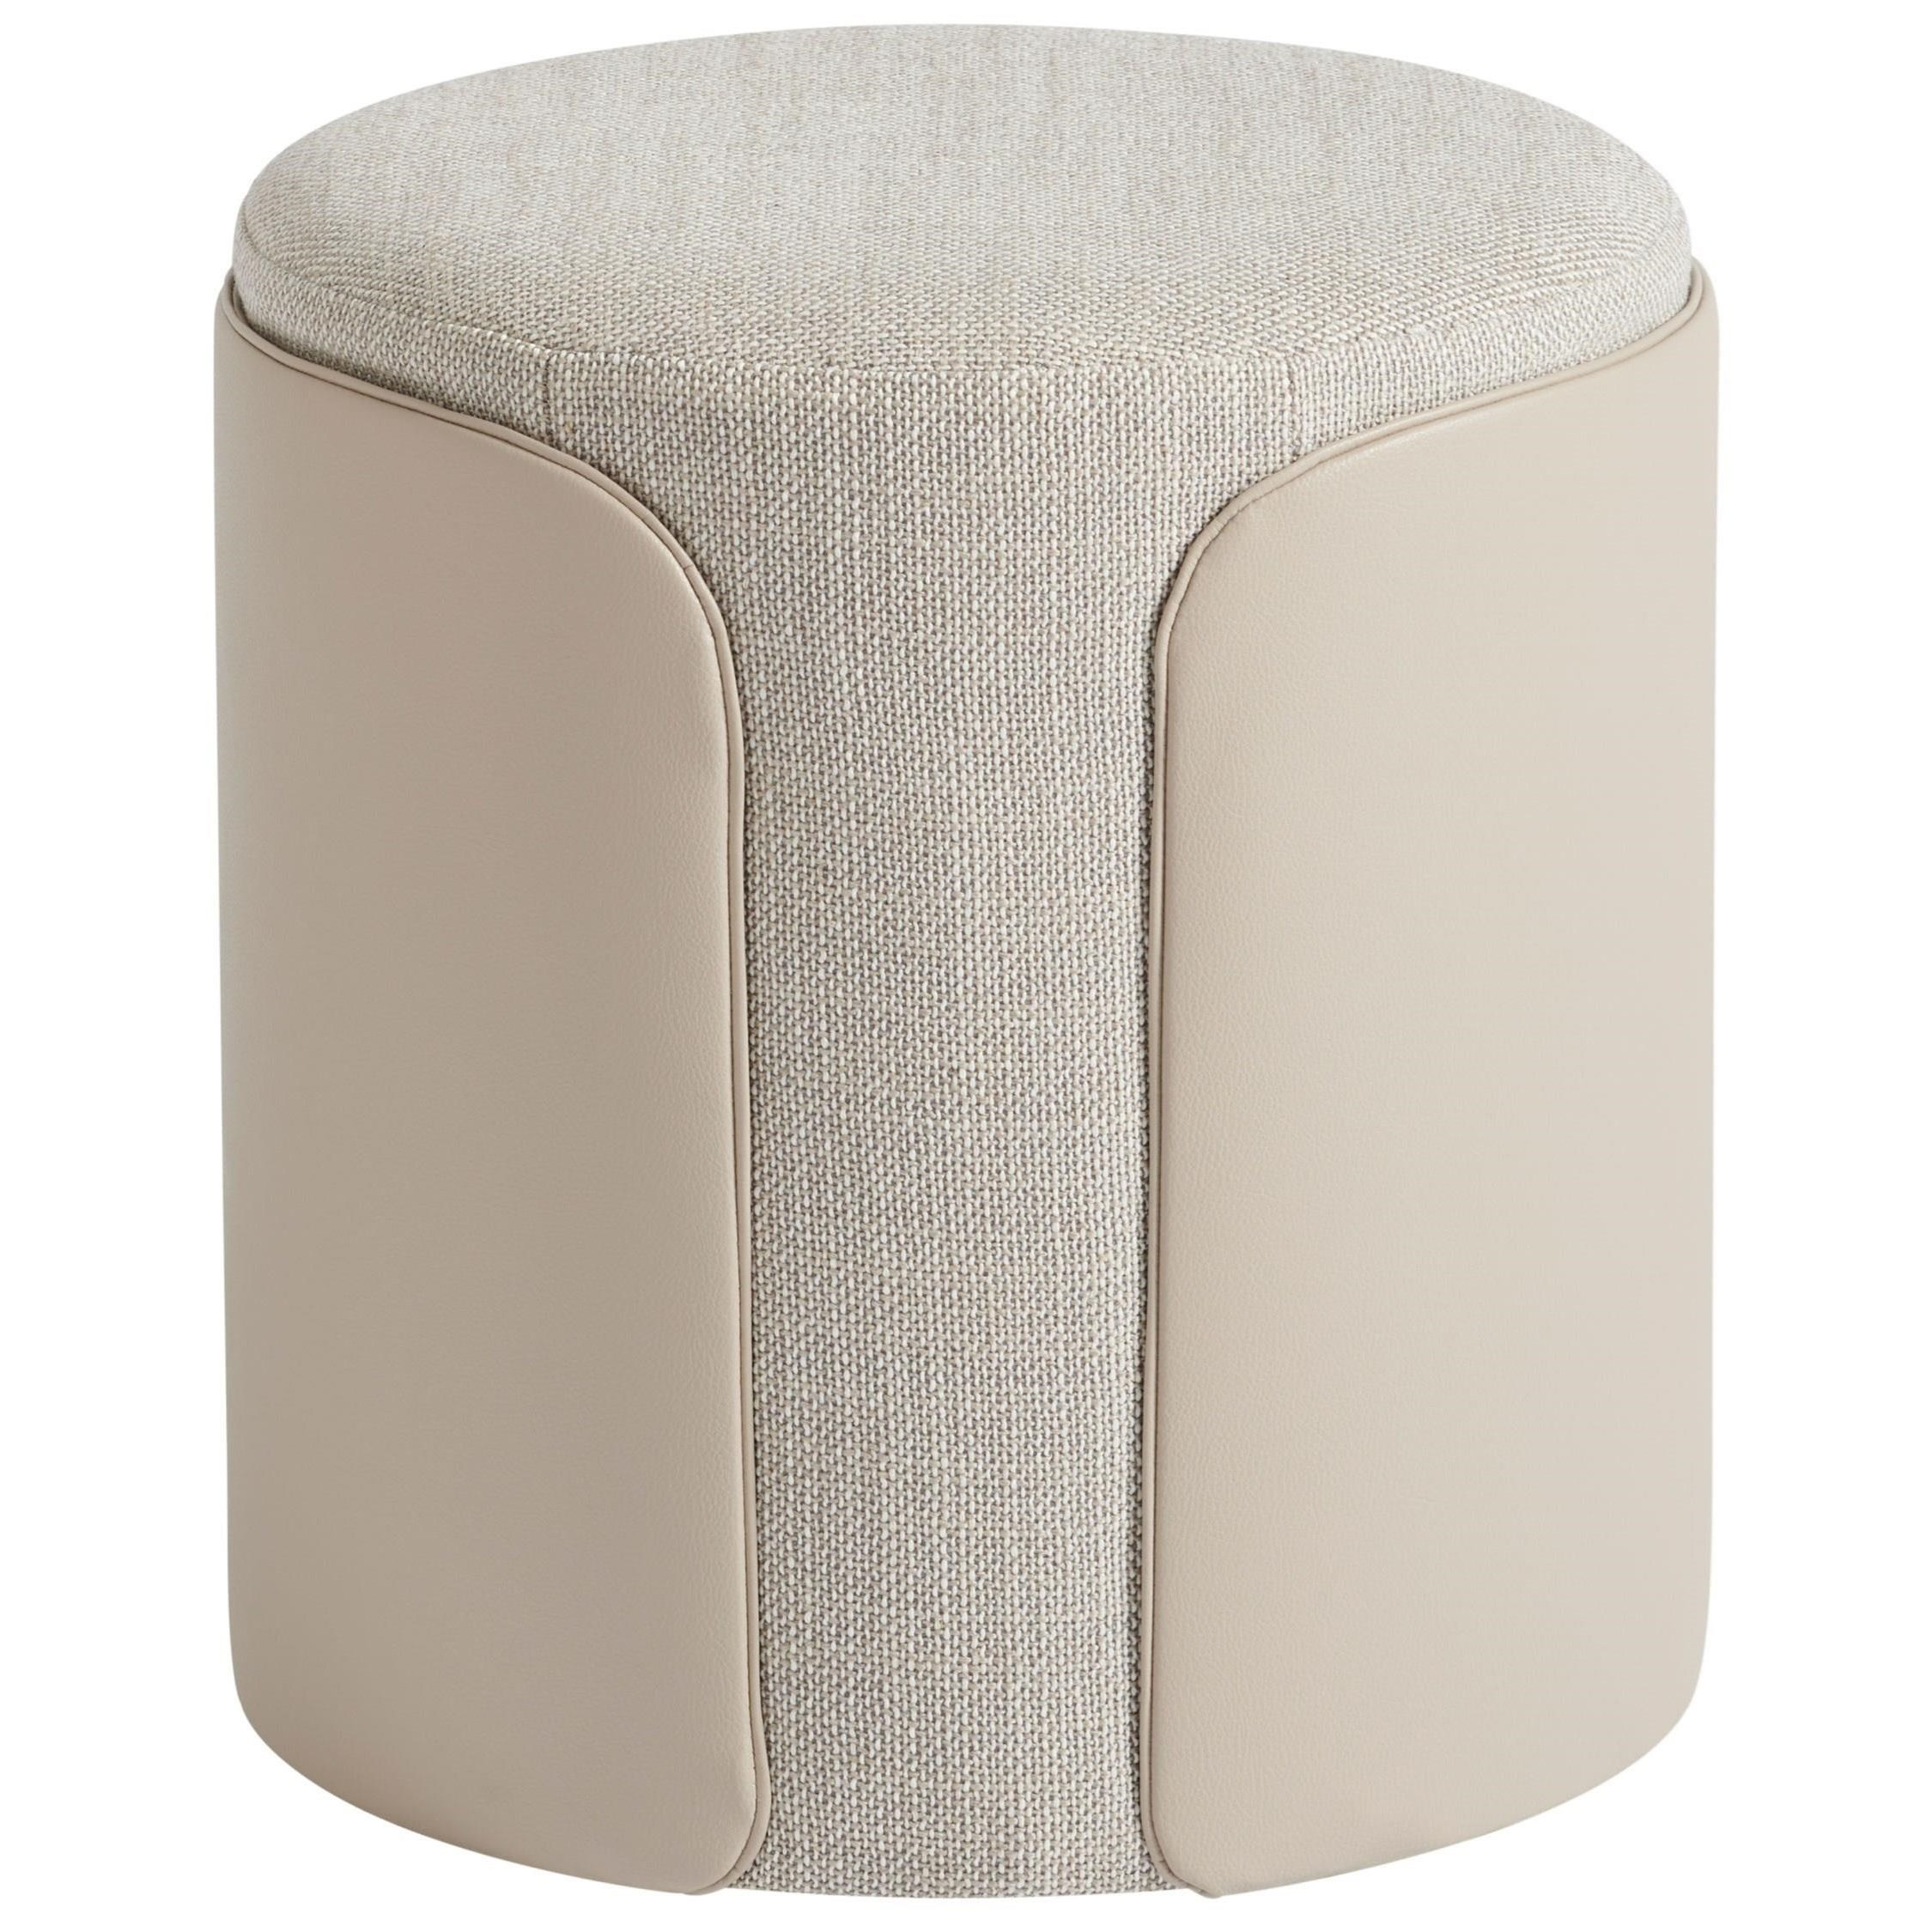 Nina Magon 941 Camille Scatter Stool by Universal at Baer's Furniture